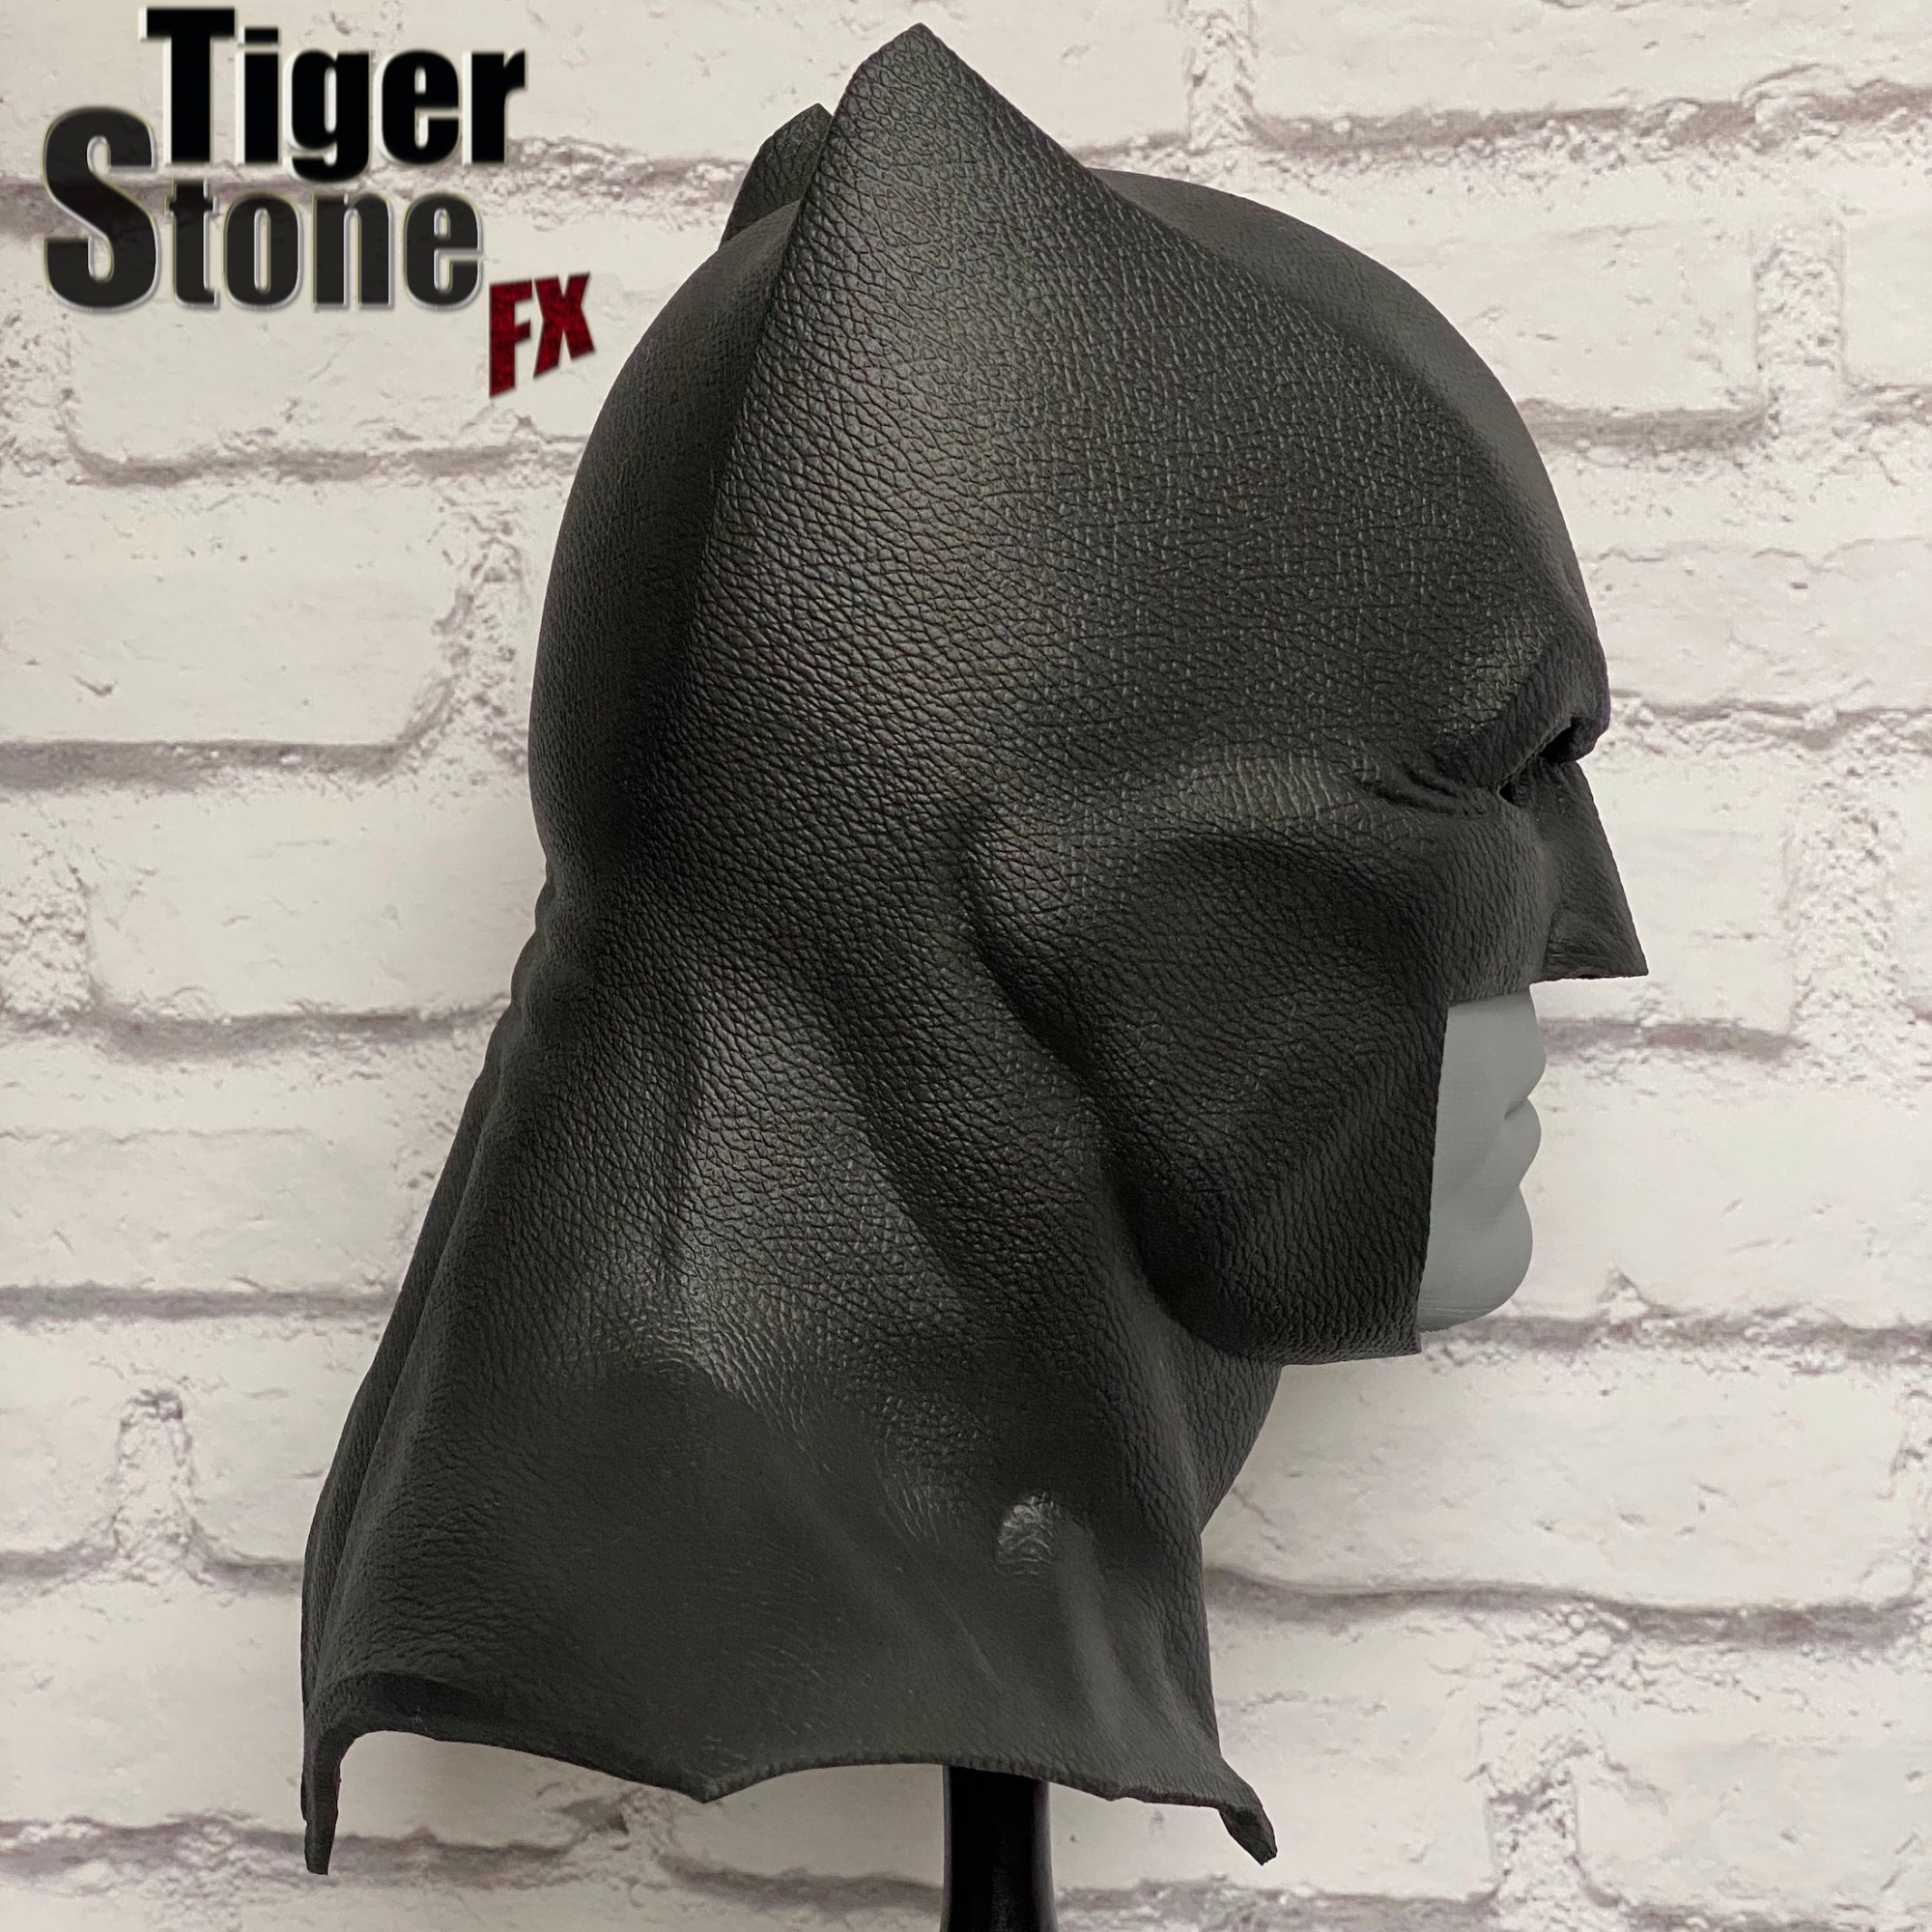 Justice League Batman cowl (right profile) - handmade by Tiger Stone FX